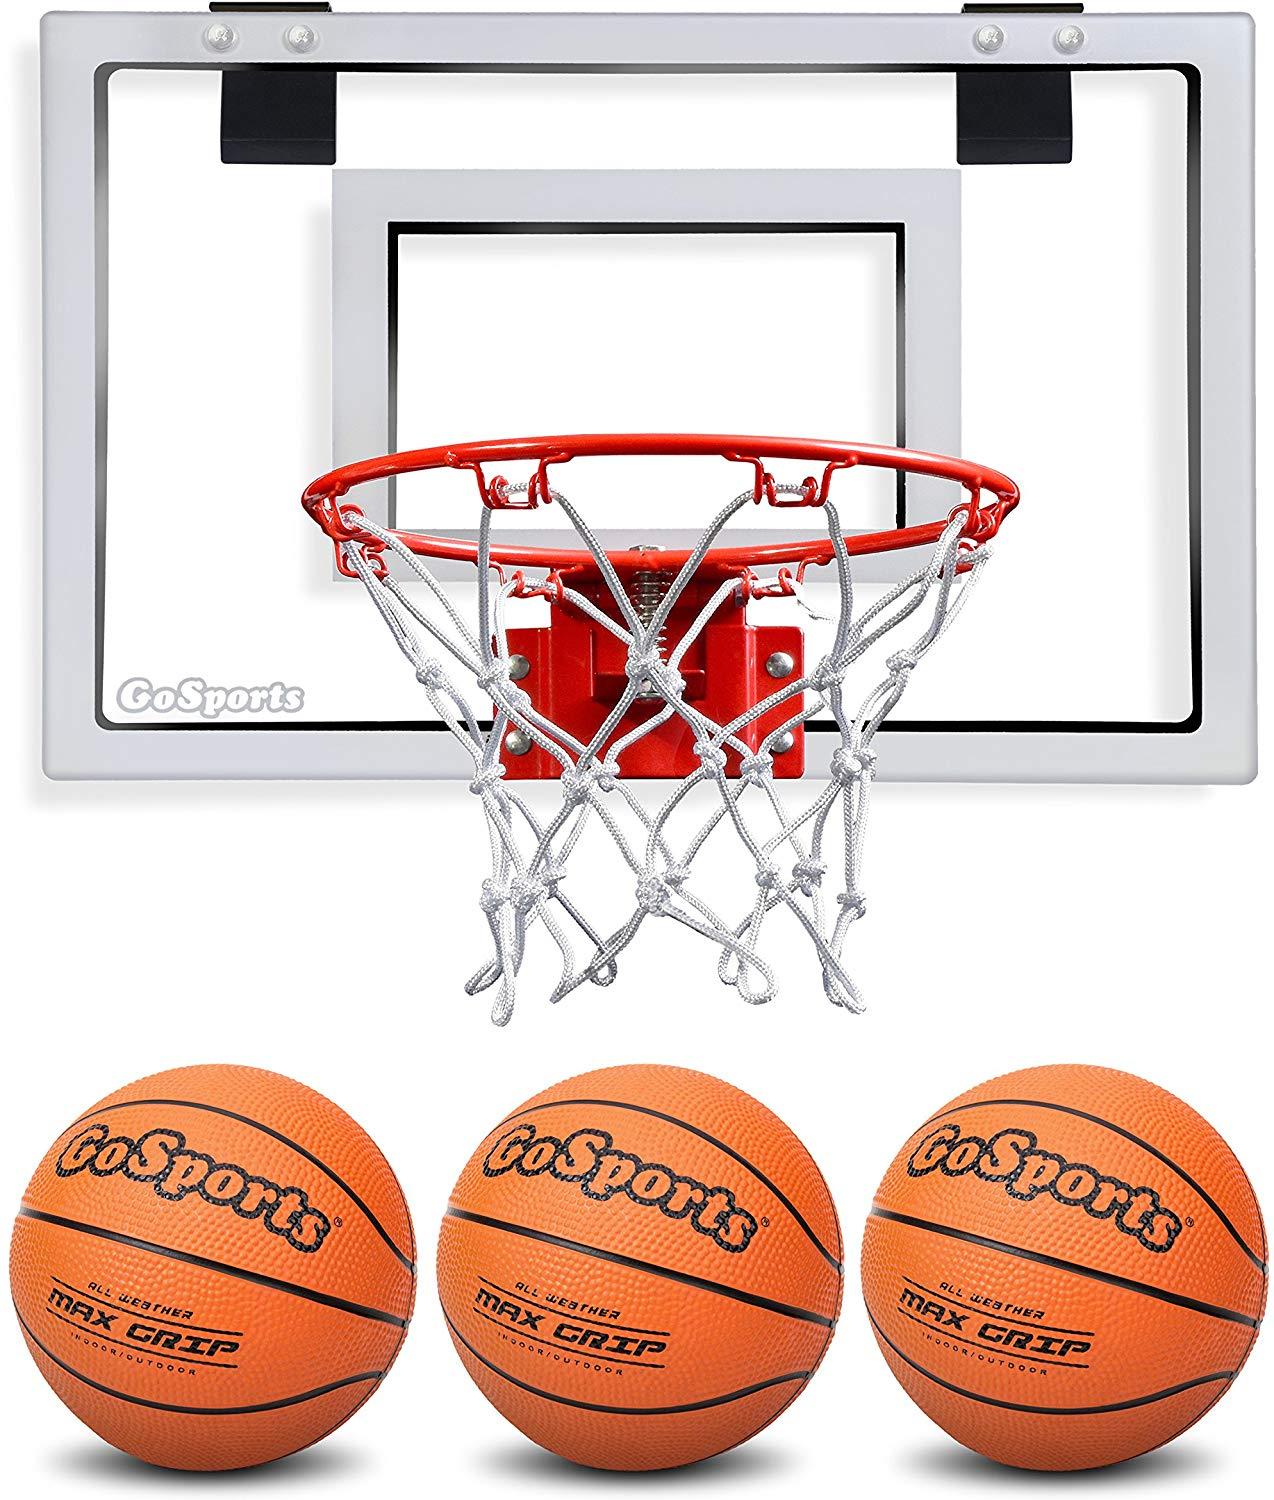 #10. GoSports Basketball Hoop with Pump & 3 Premium Basketballs